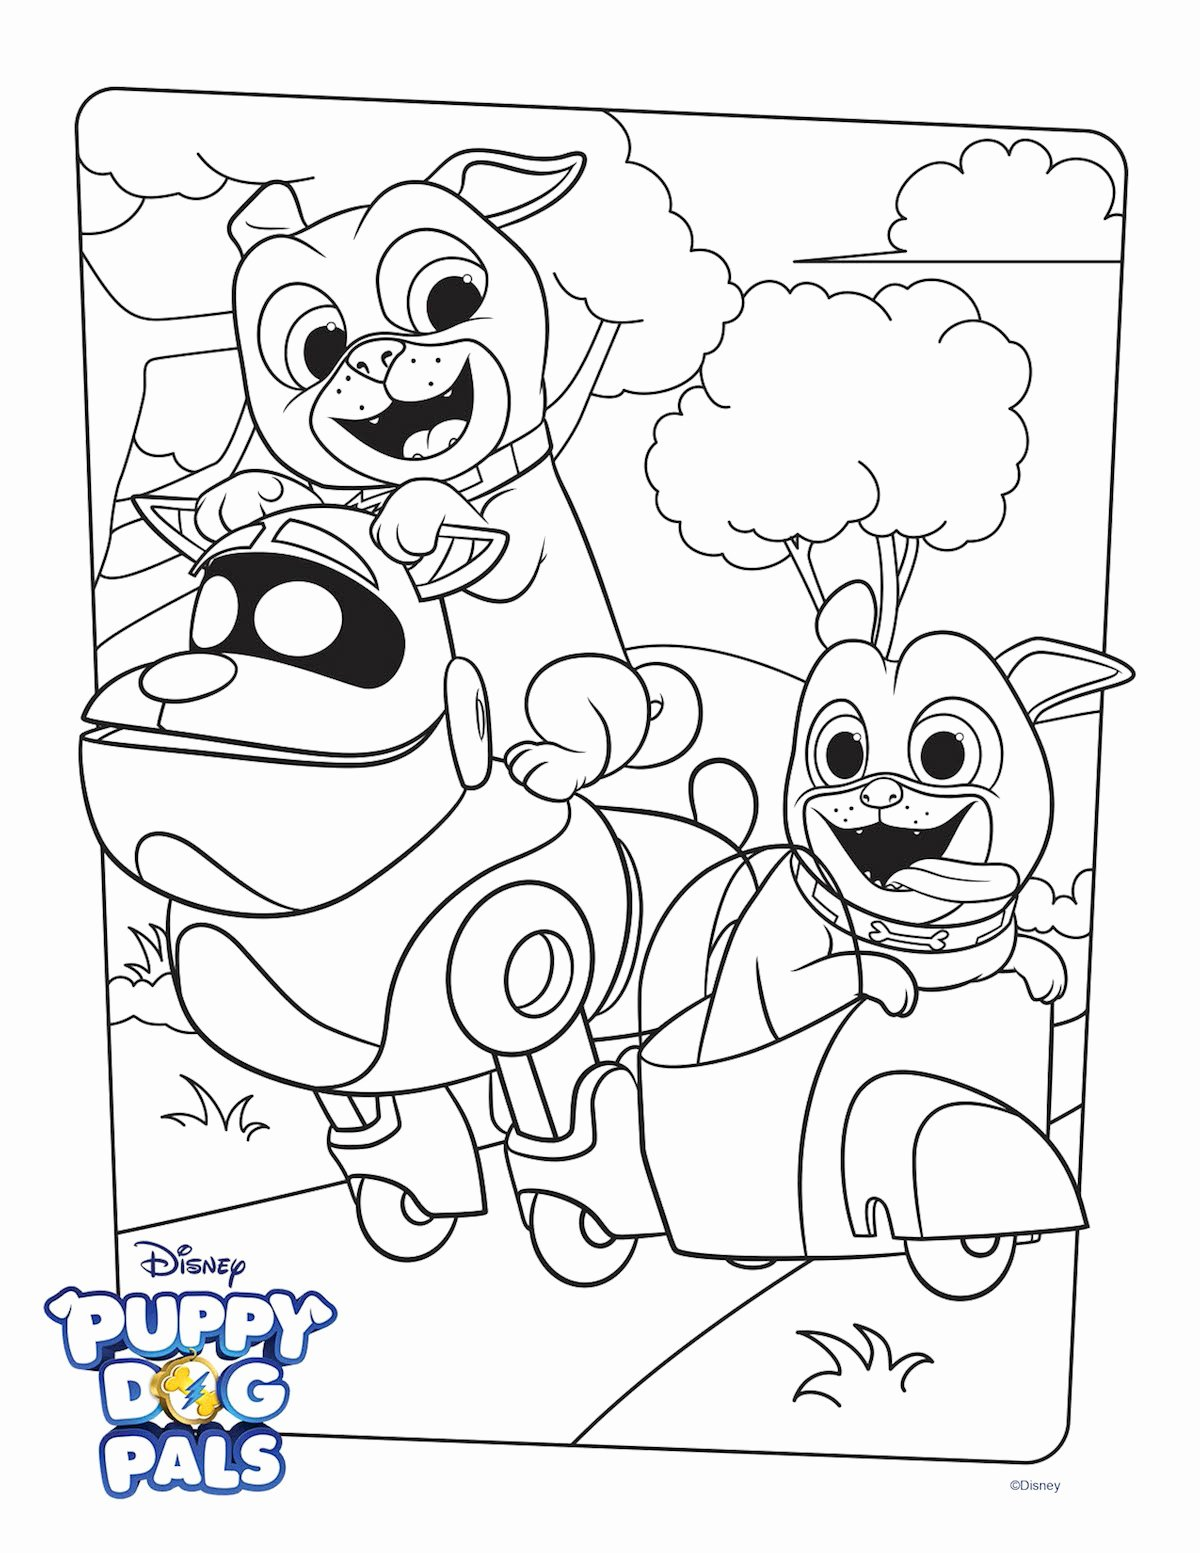 Coloring Pages Of Puppies New Puppy Dog Pals Coloring Page Activity